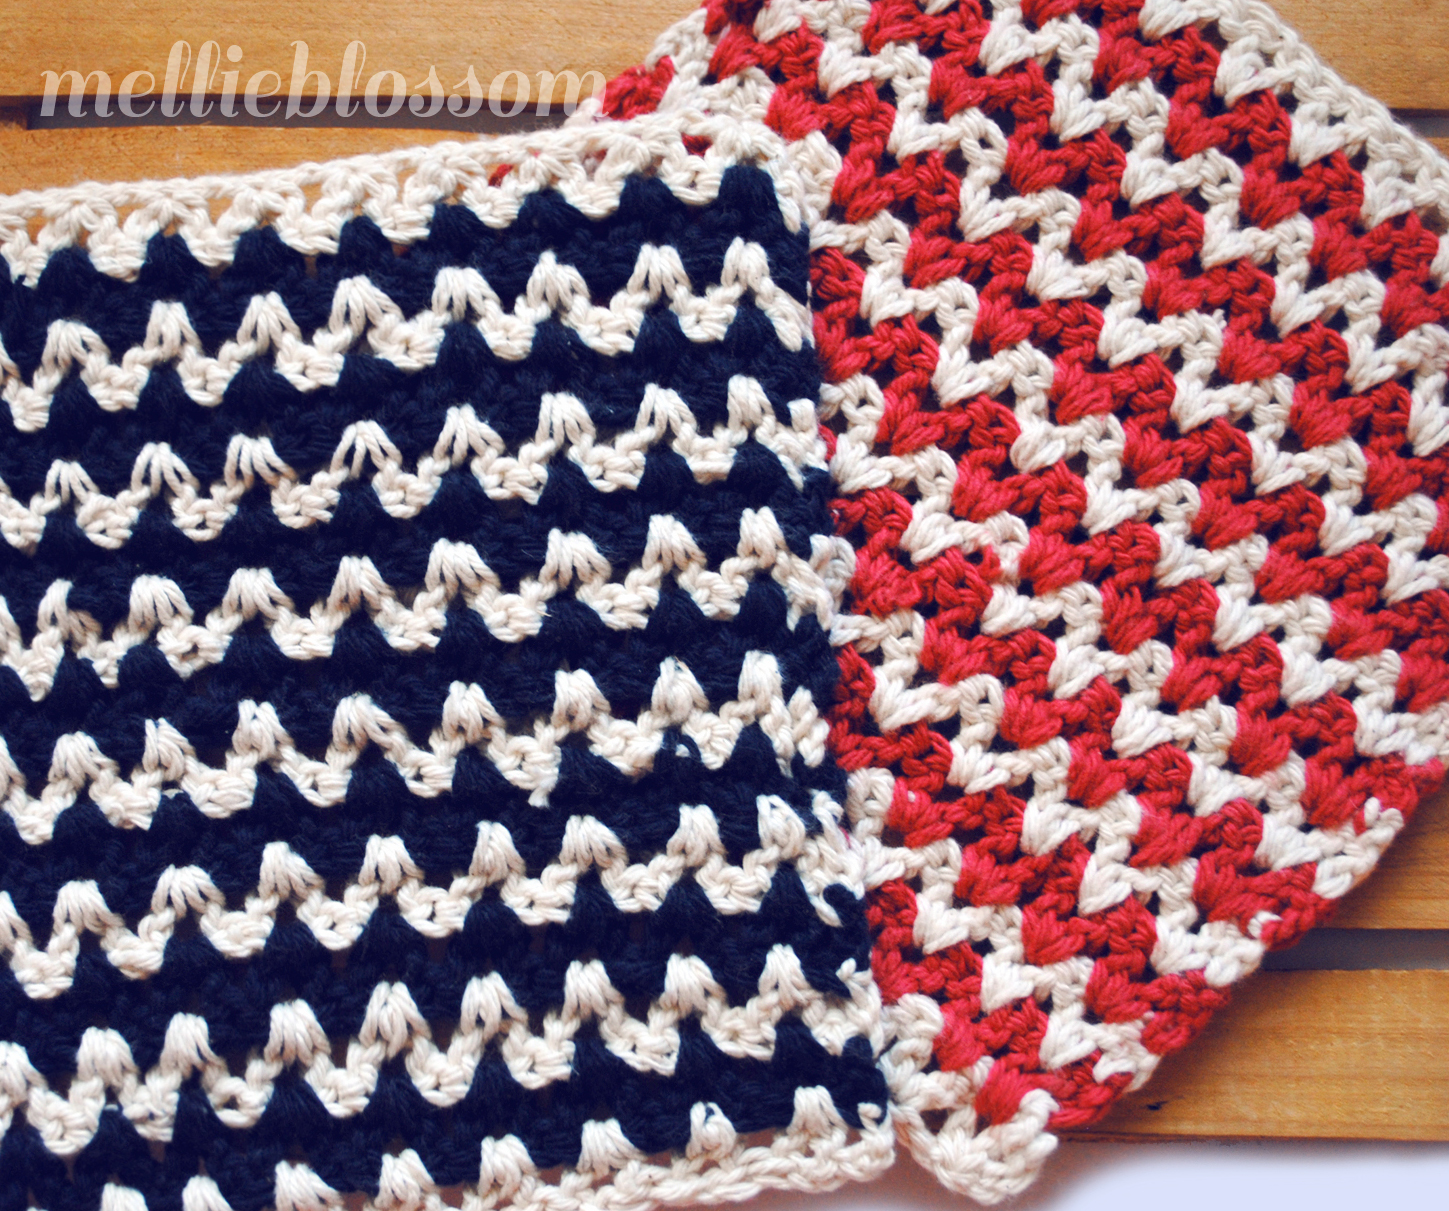 Free Crochet Dishcloth Pattern - ZigZag - mellie blossom